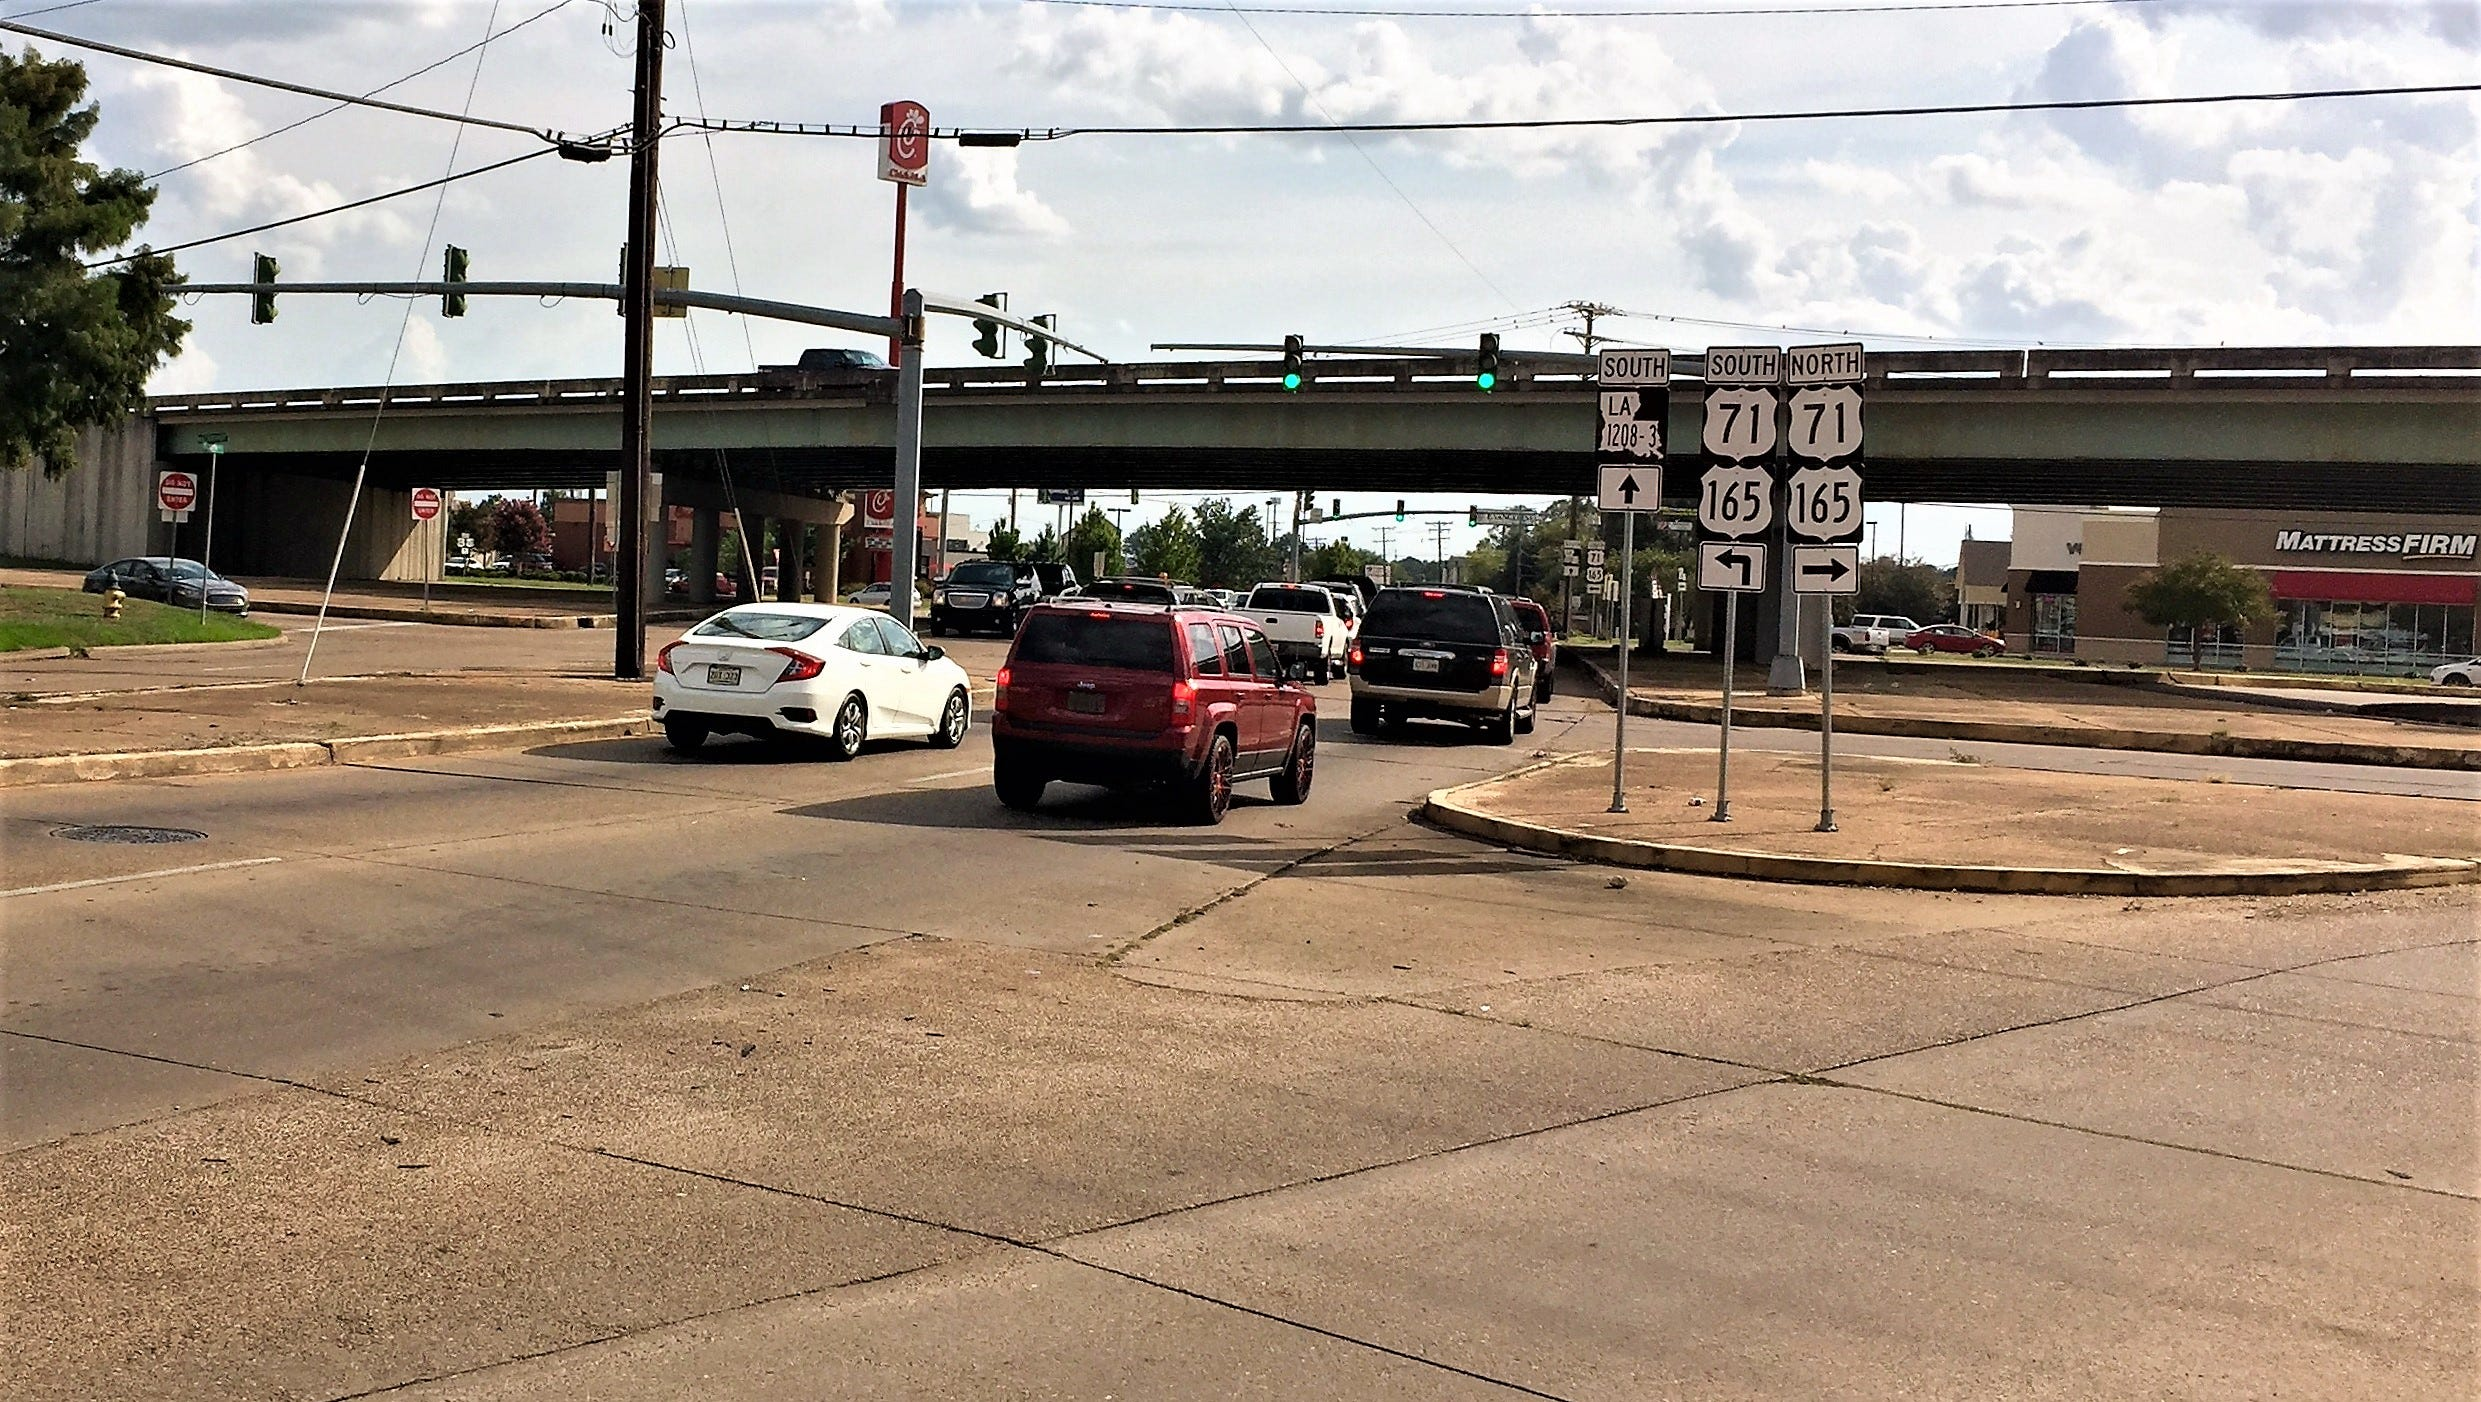 The intersection of Jackson Street and MacArthur Drive is getting an overhaul to improve pedestrian safety and aesthetics.